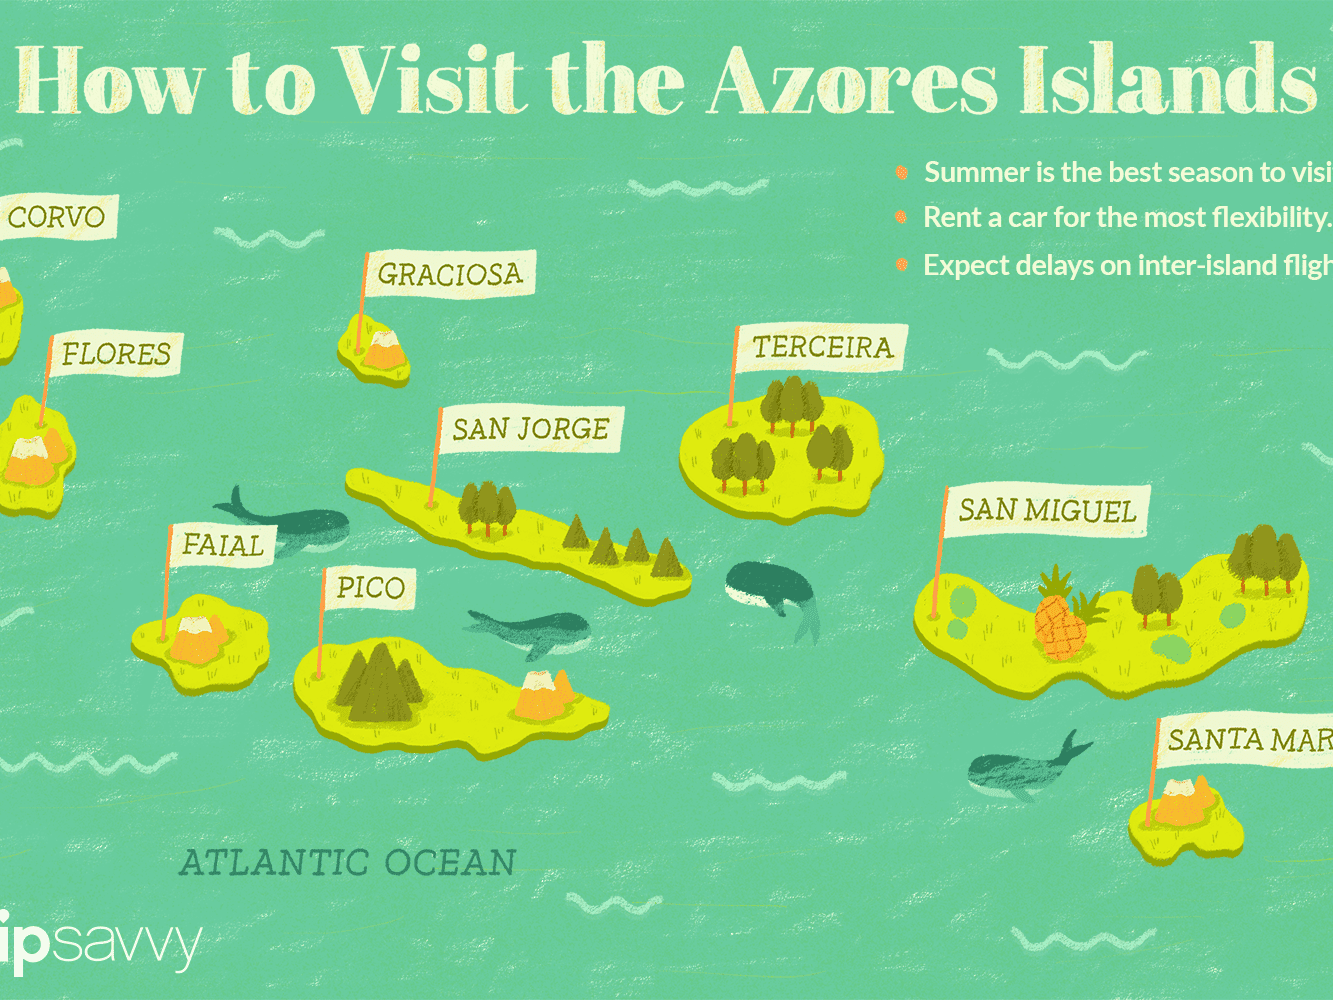 Travel Guide To The Azores Islands